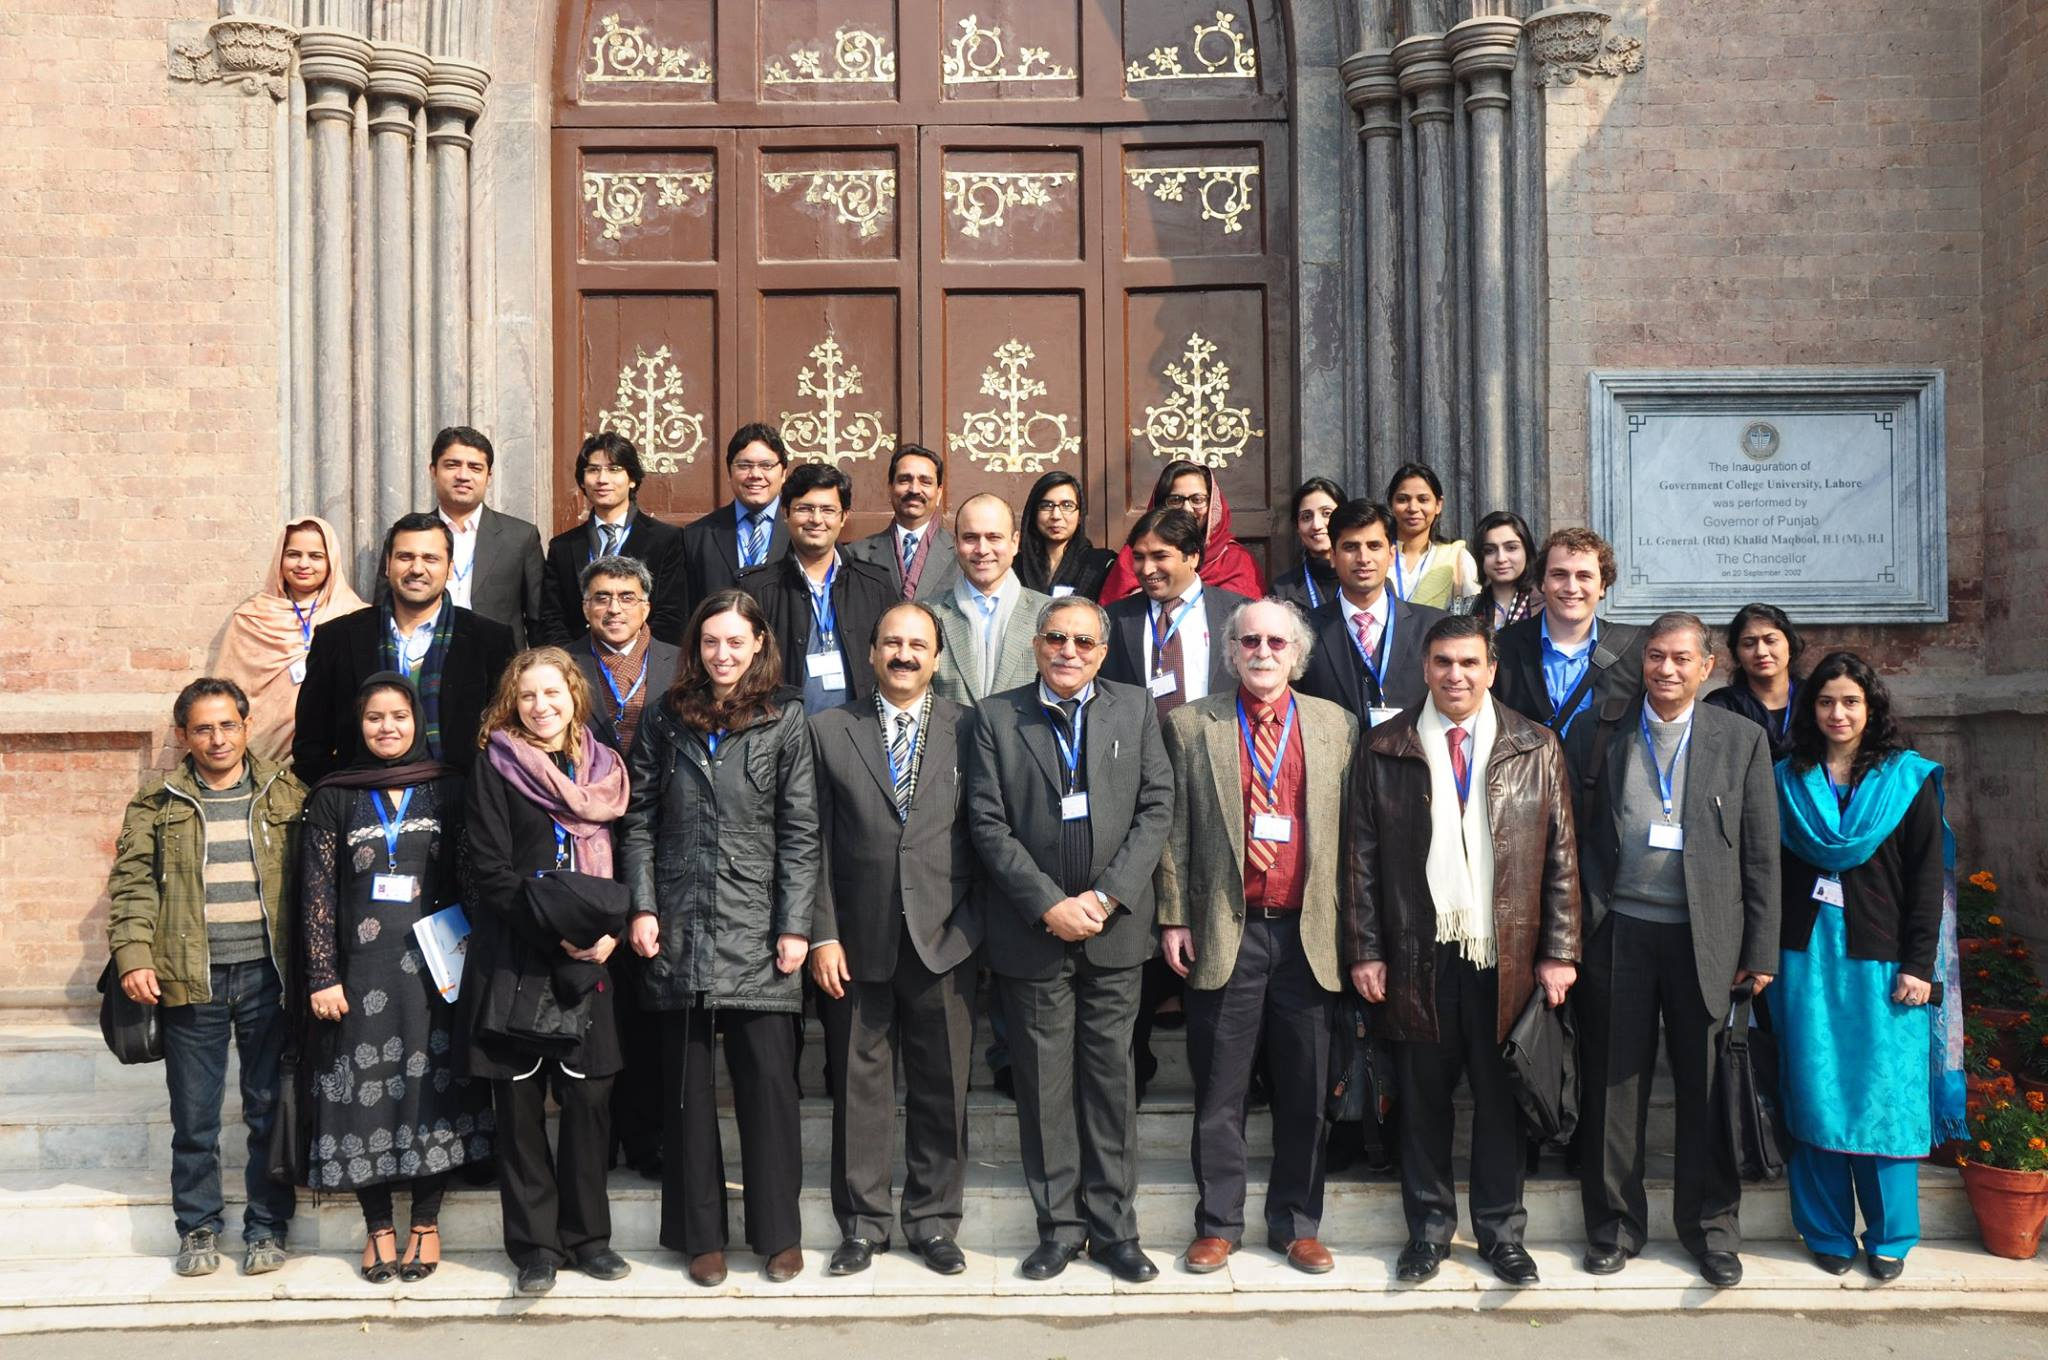 Group Photo of Conference Participants with the Vice Chancellor